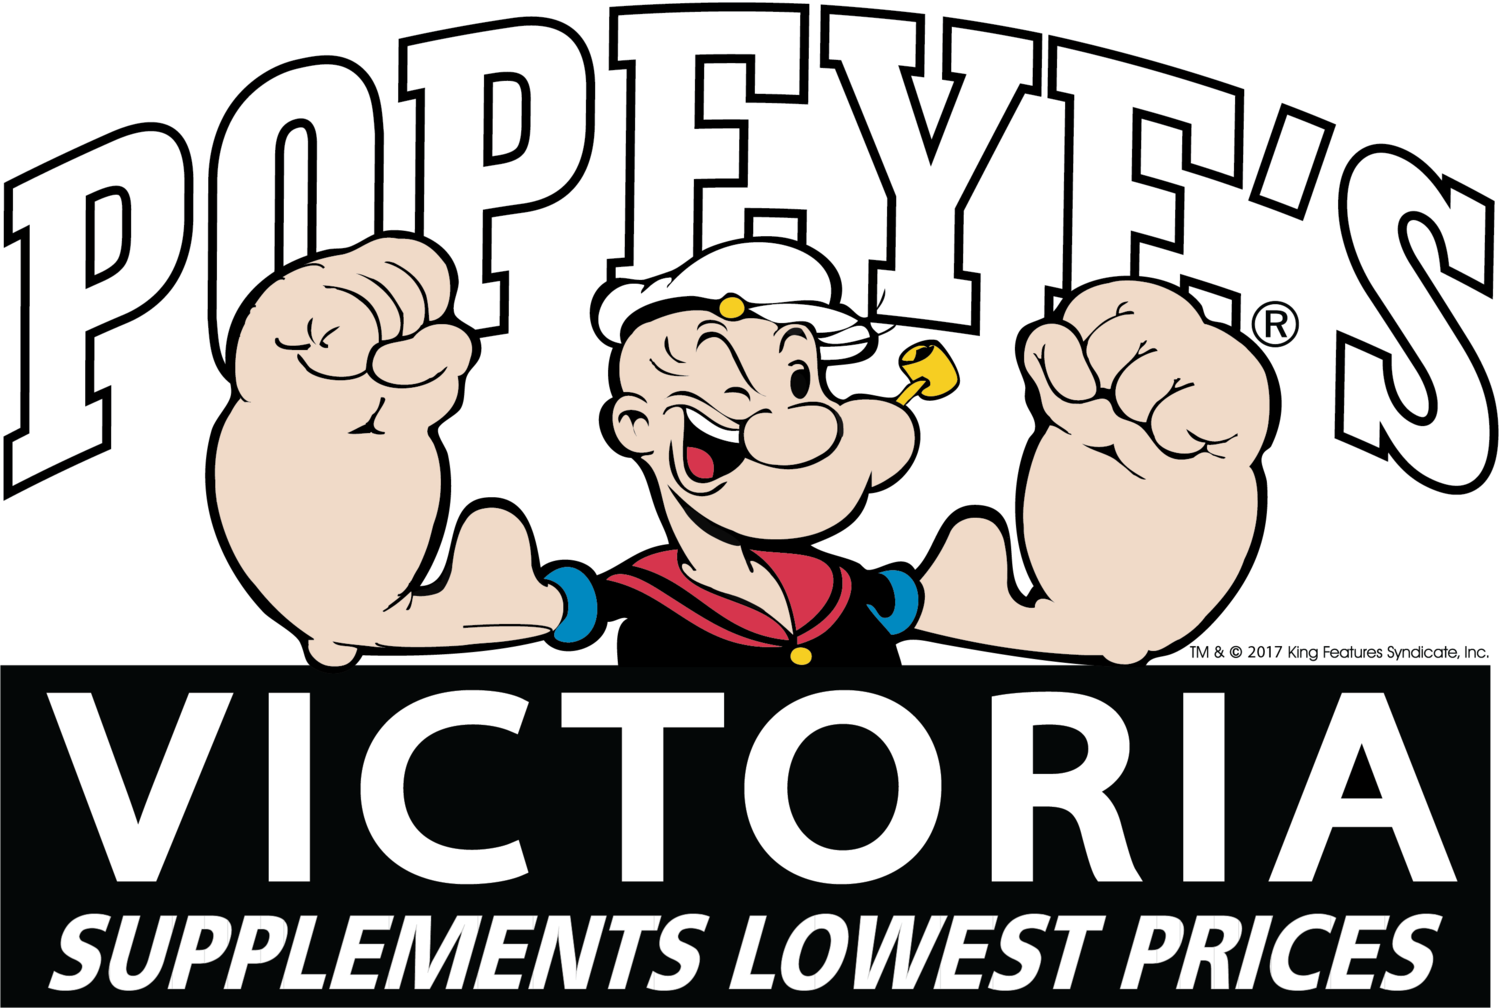 Popeye's Supplements Victoria